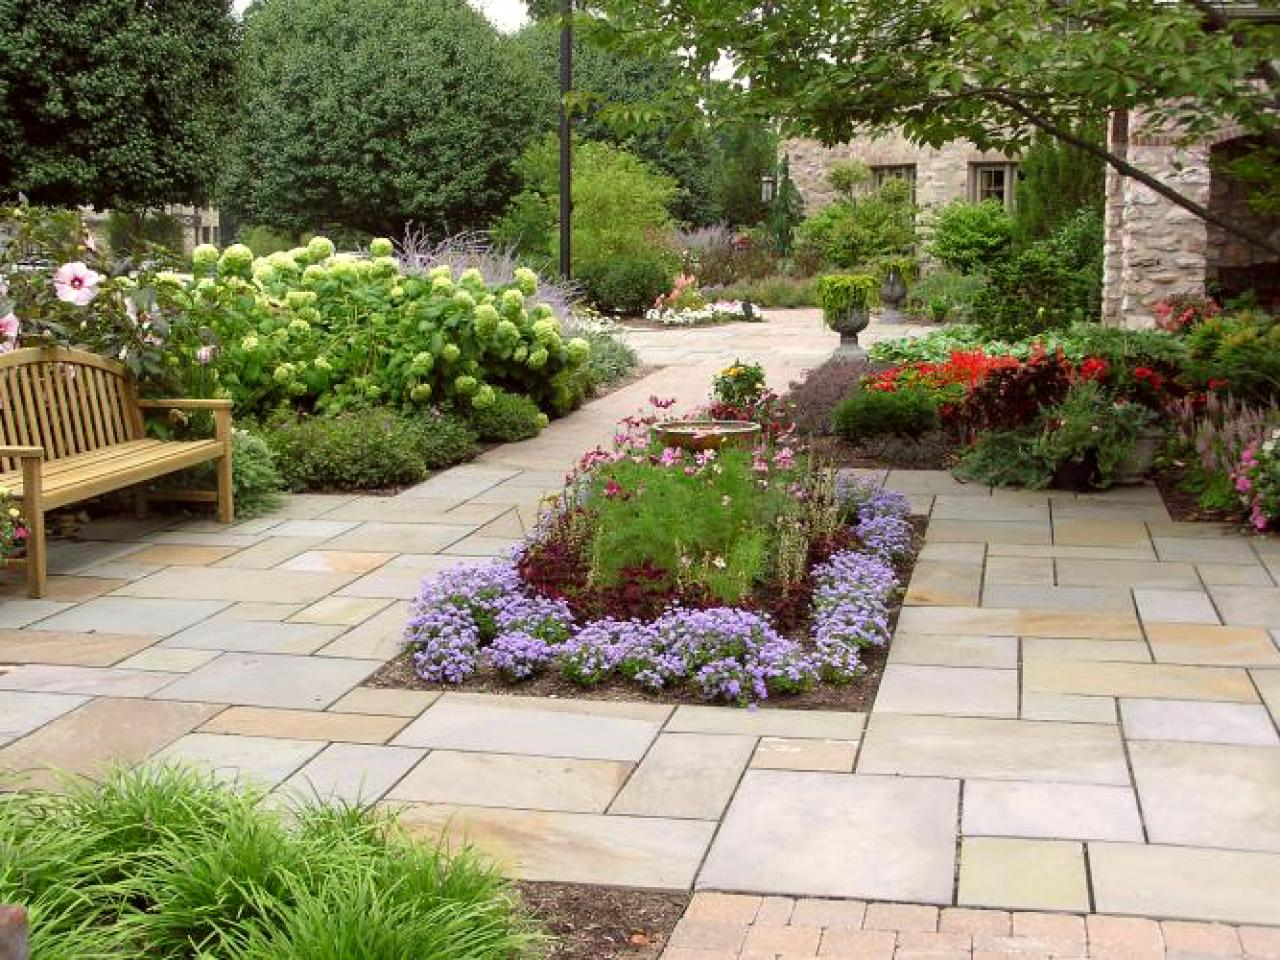 Plants for your patio outdoor design landscaping ideas for Outdoor garden ideas